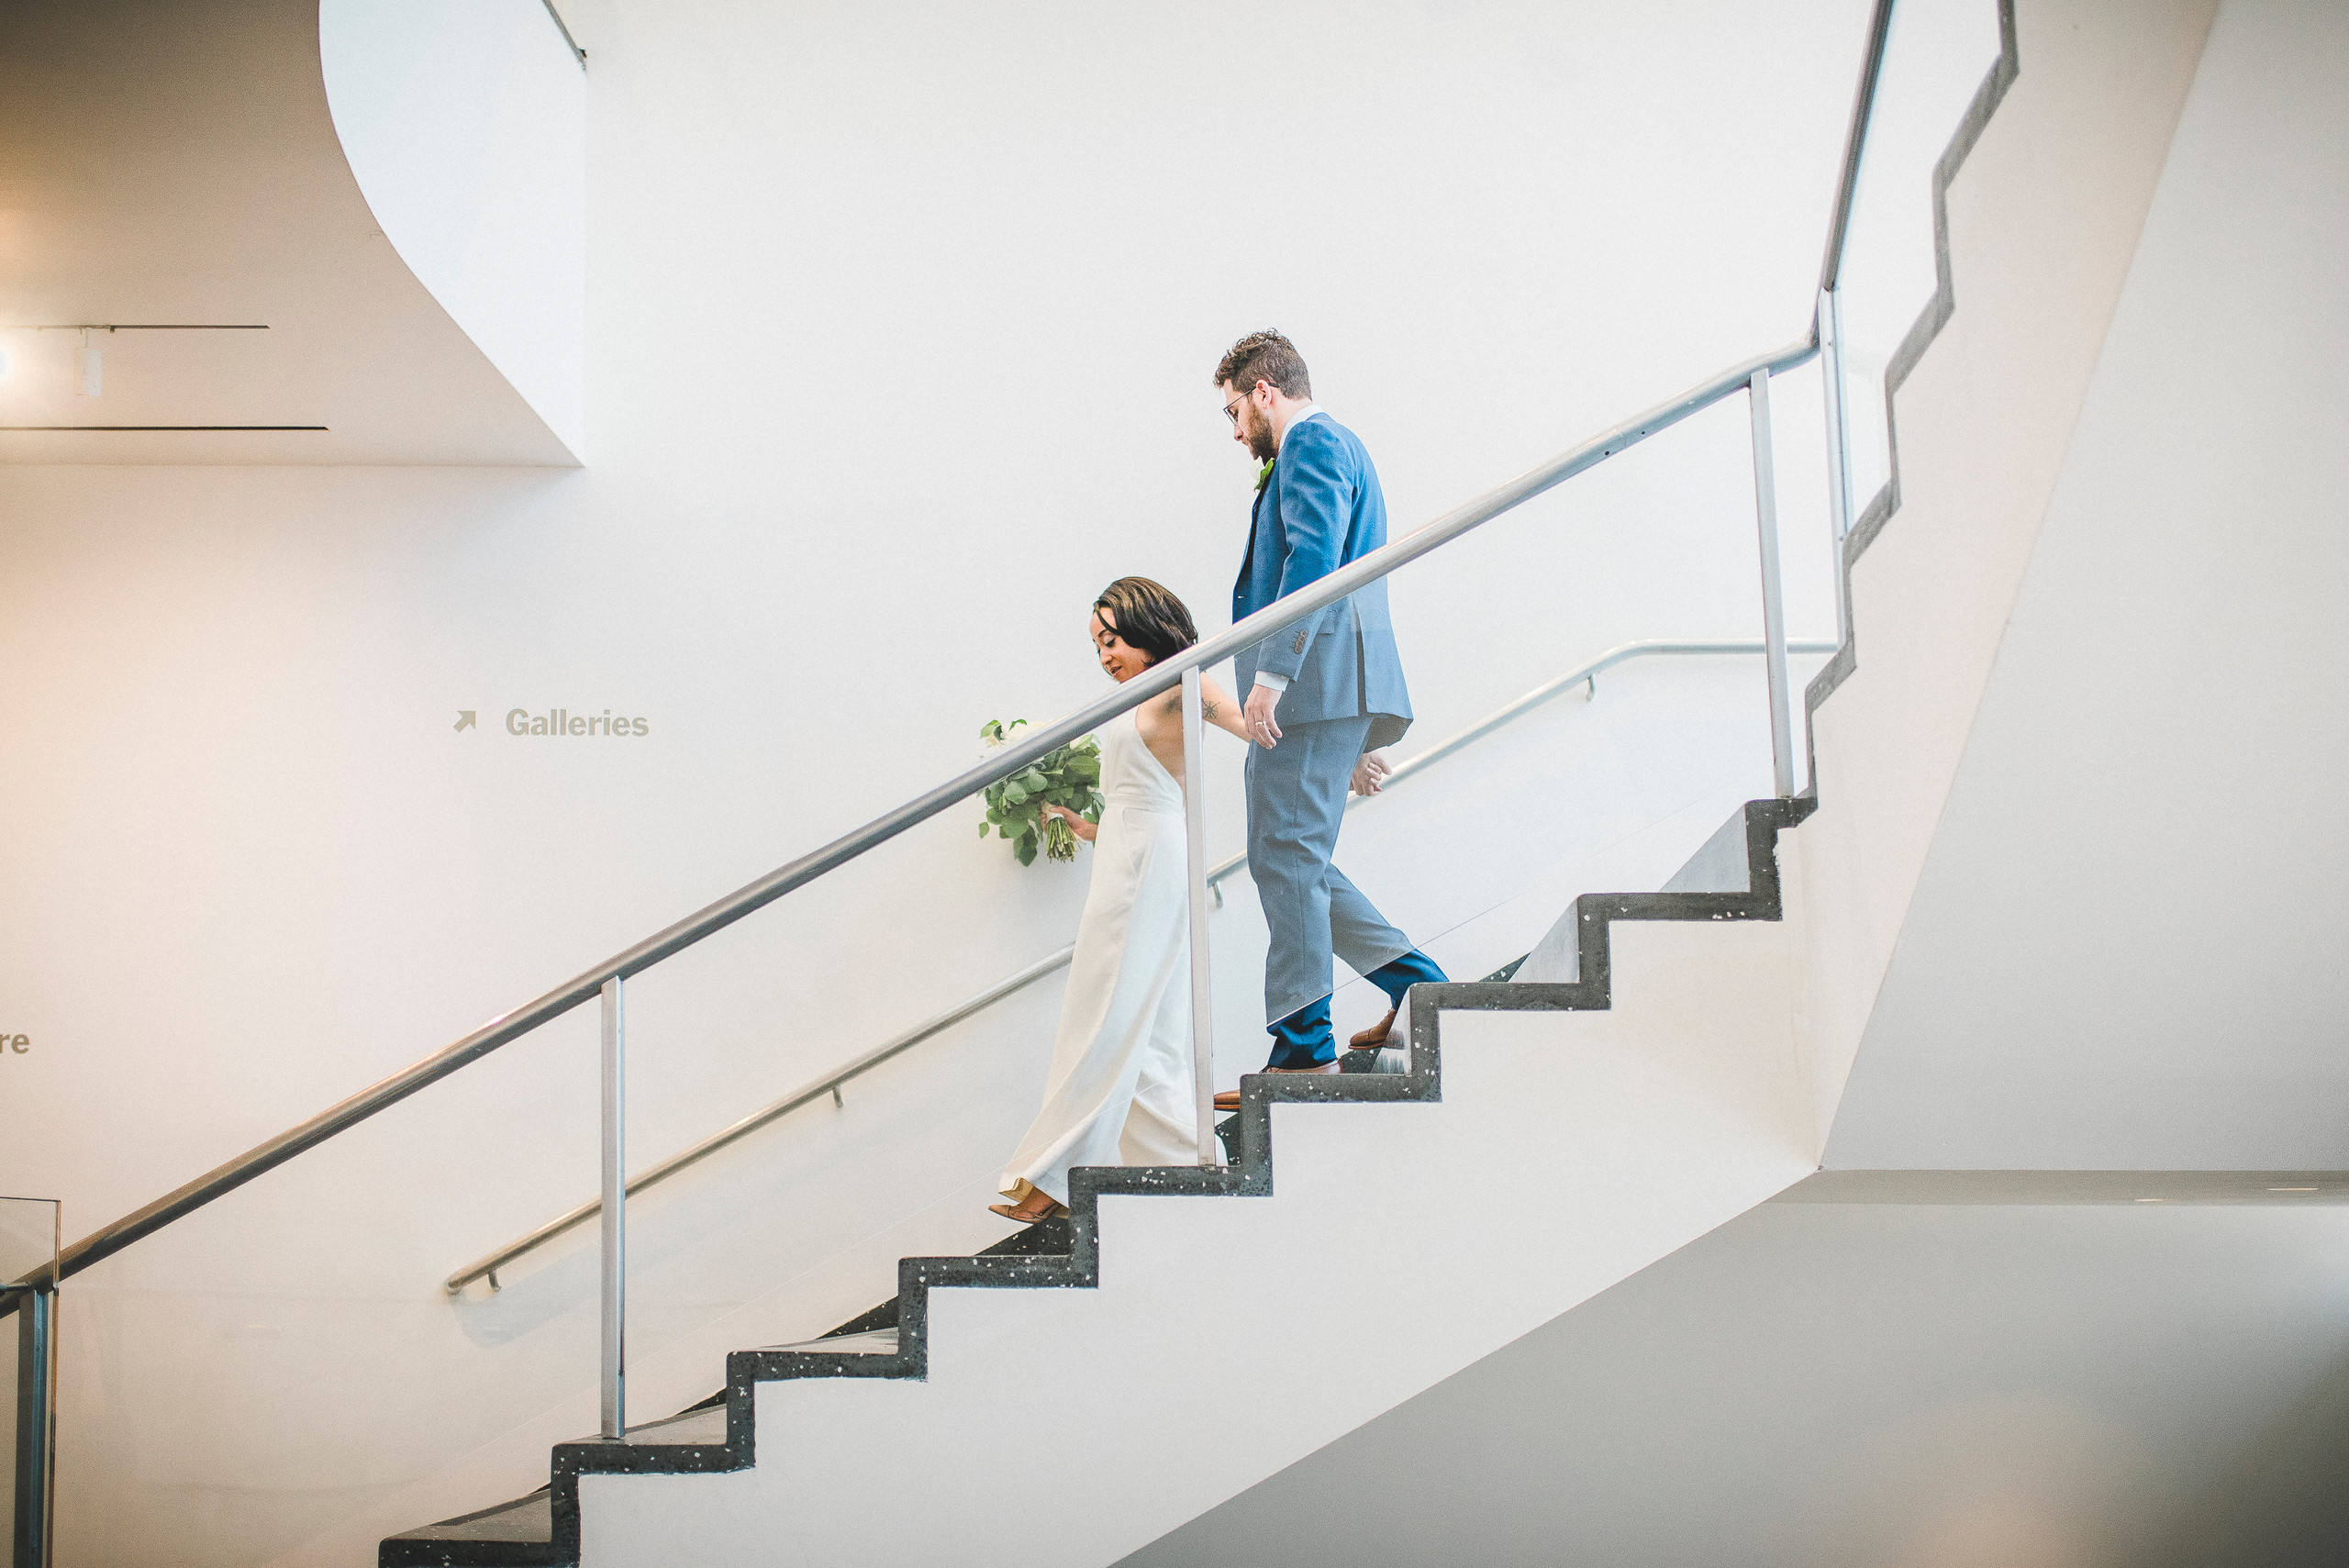 Galleries Bride and Groom on Stairs MoMA NYC wedding staircase